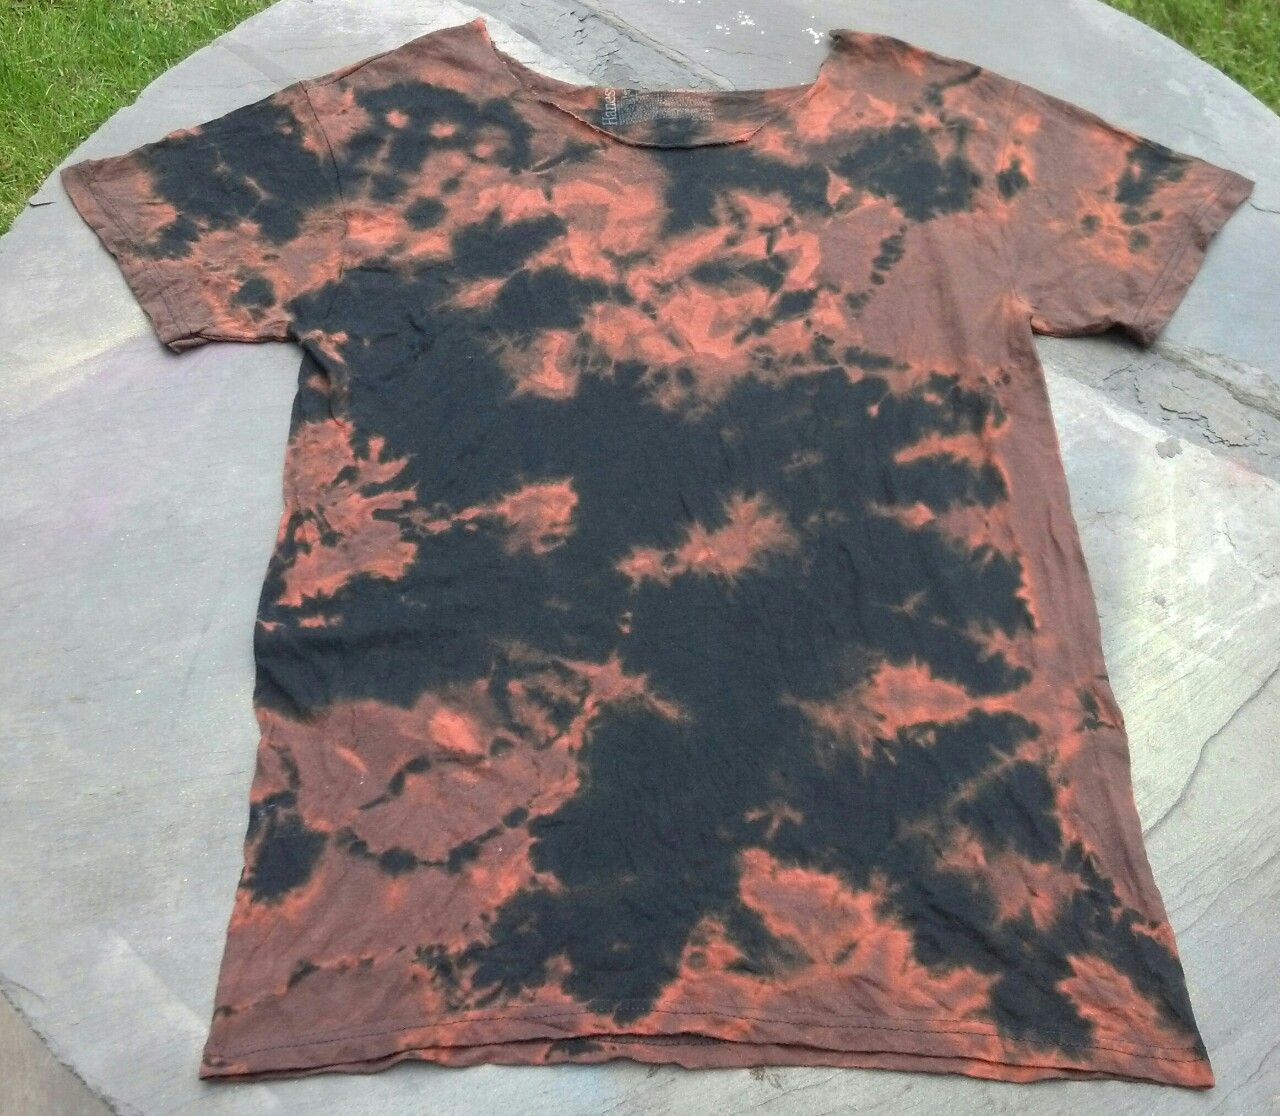 Reverse bleach dye on black shirt | DIY - Let's Get Crafty ...